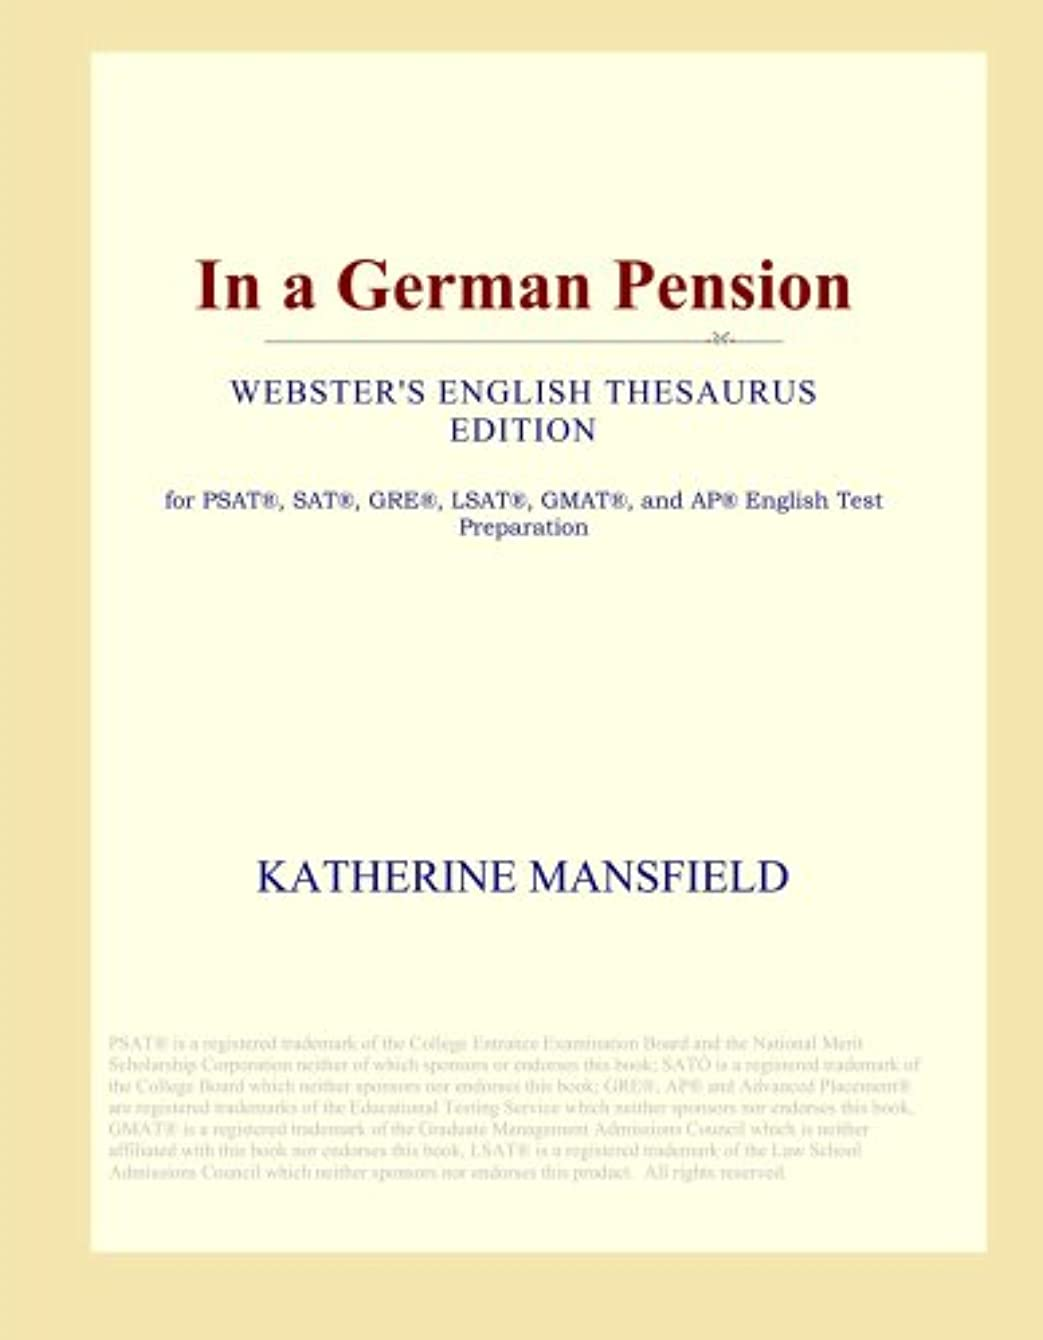 In a German Pension (Webster's English Thesaurus Edition)